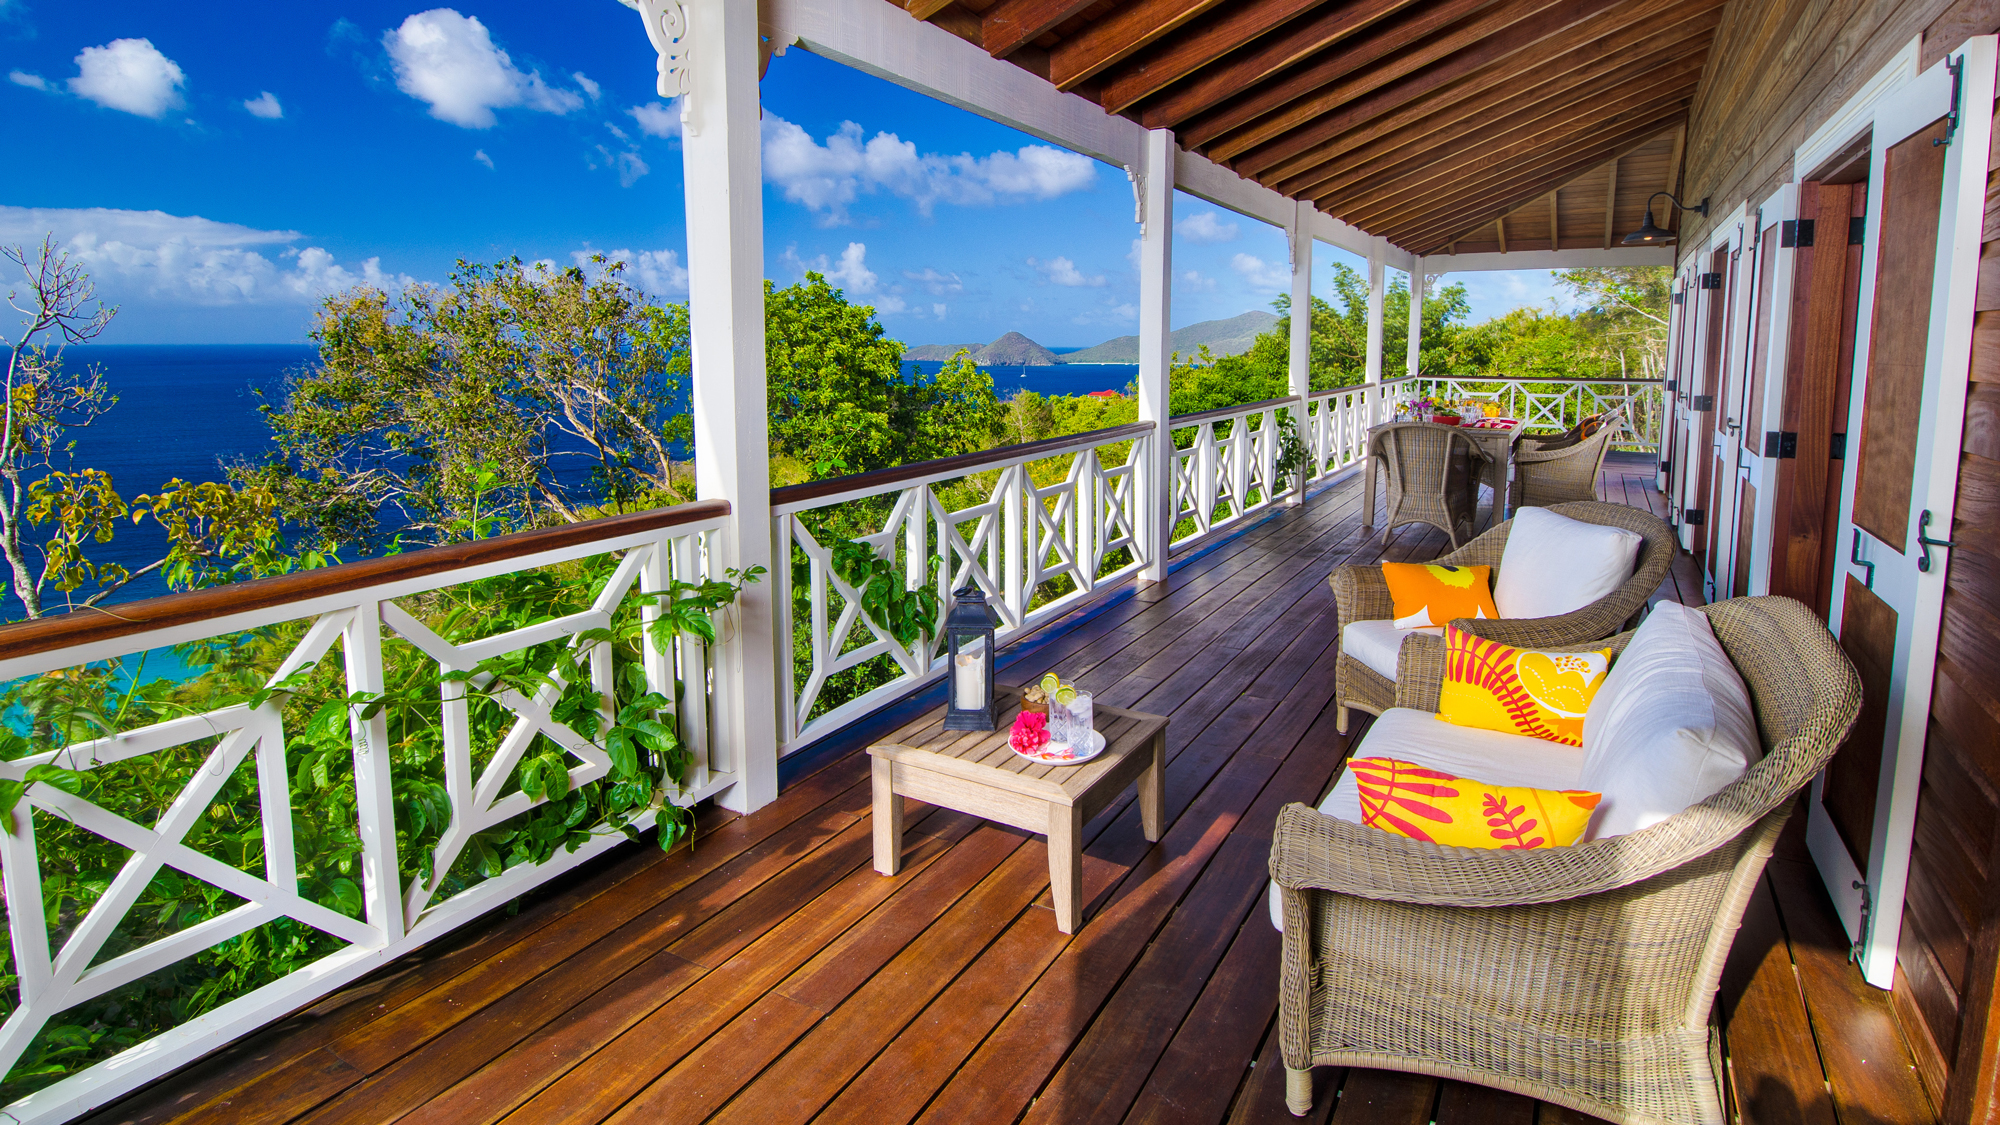 patio view overlooking the water from Trunk Nest in the british virgin islands